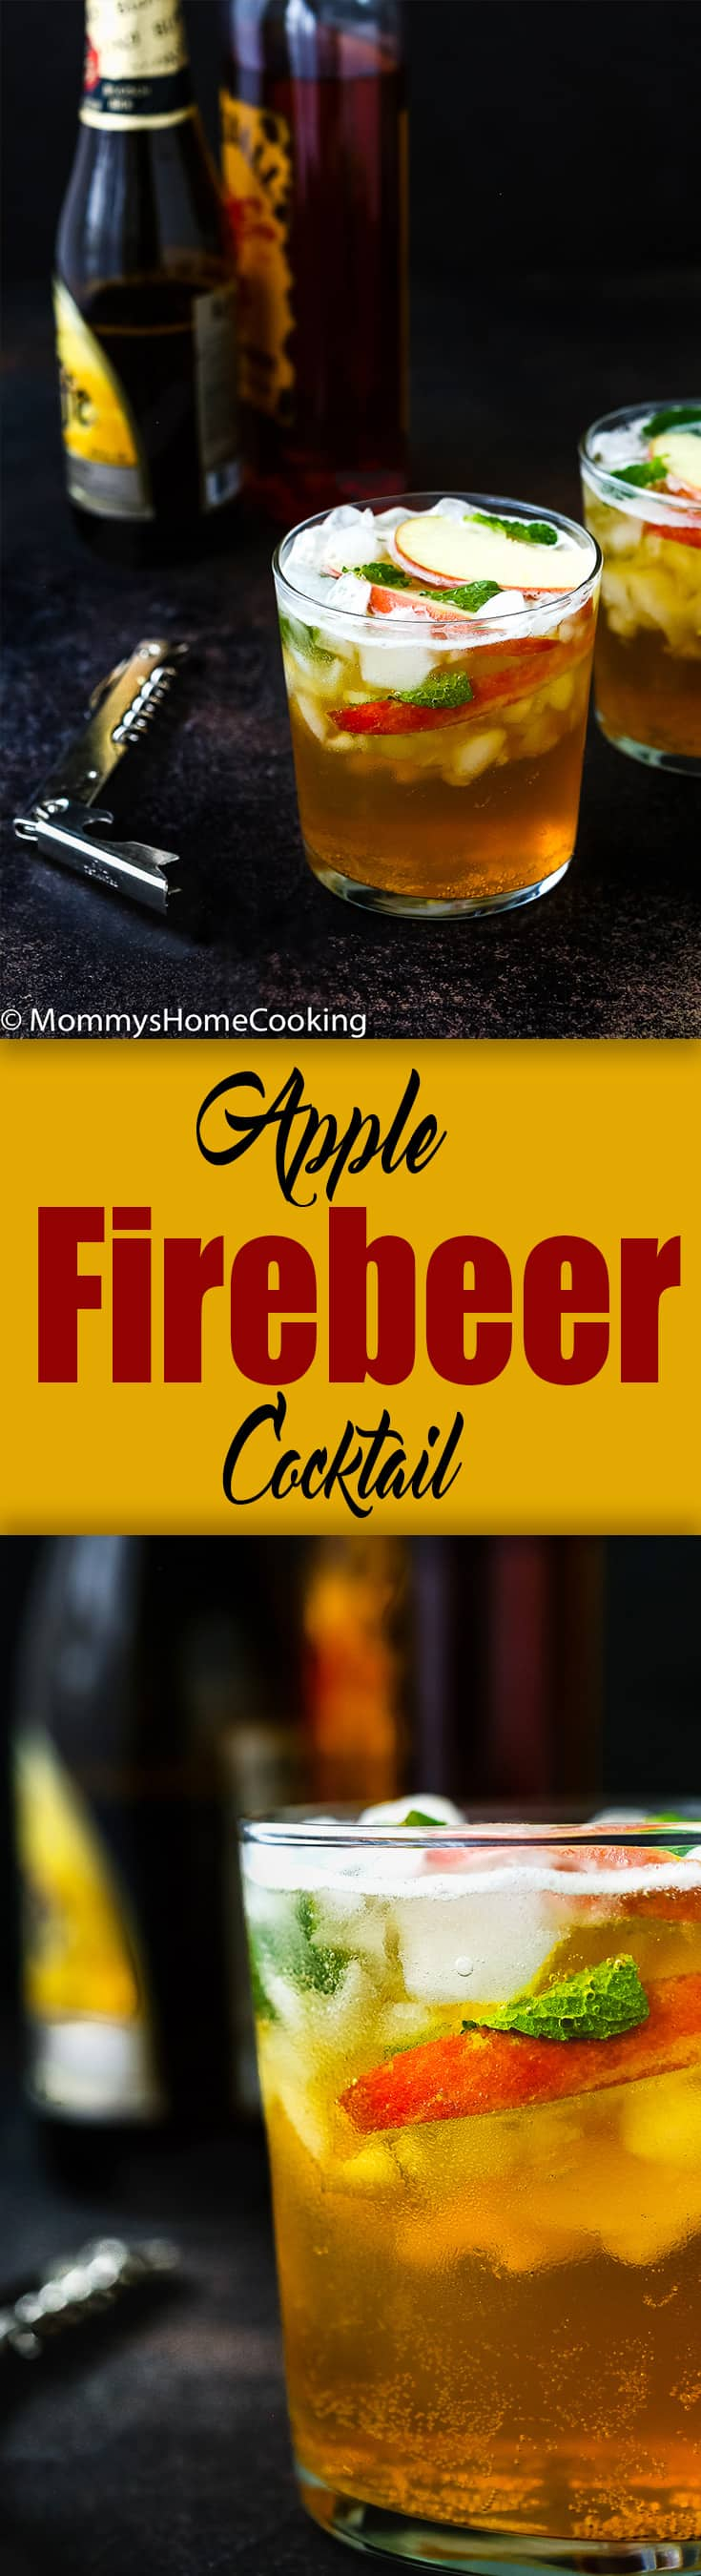 This effervescent​ Apple Firebeer Cocktail has a variety of flavors that will get party started. It's a deliciously easy cocktail that can be stirred up in seconds, with only 3 ingredients. https://mommyshomecooking.com